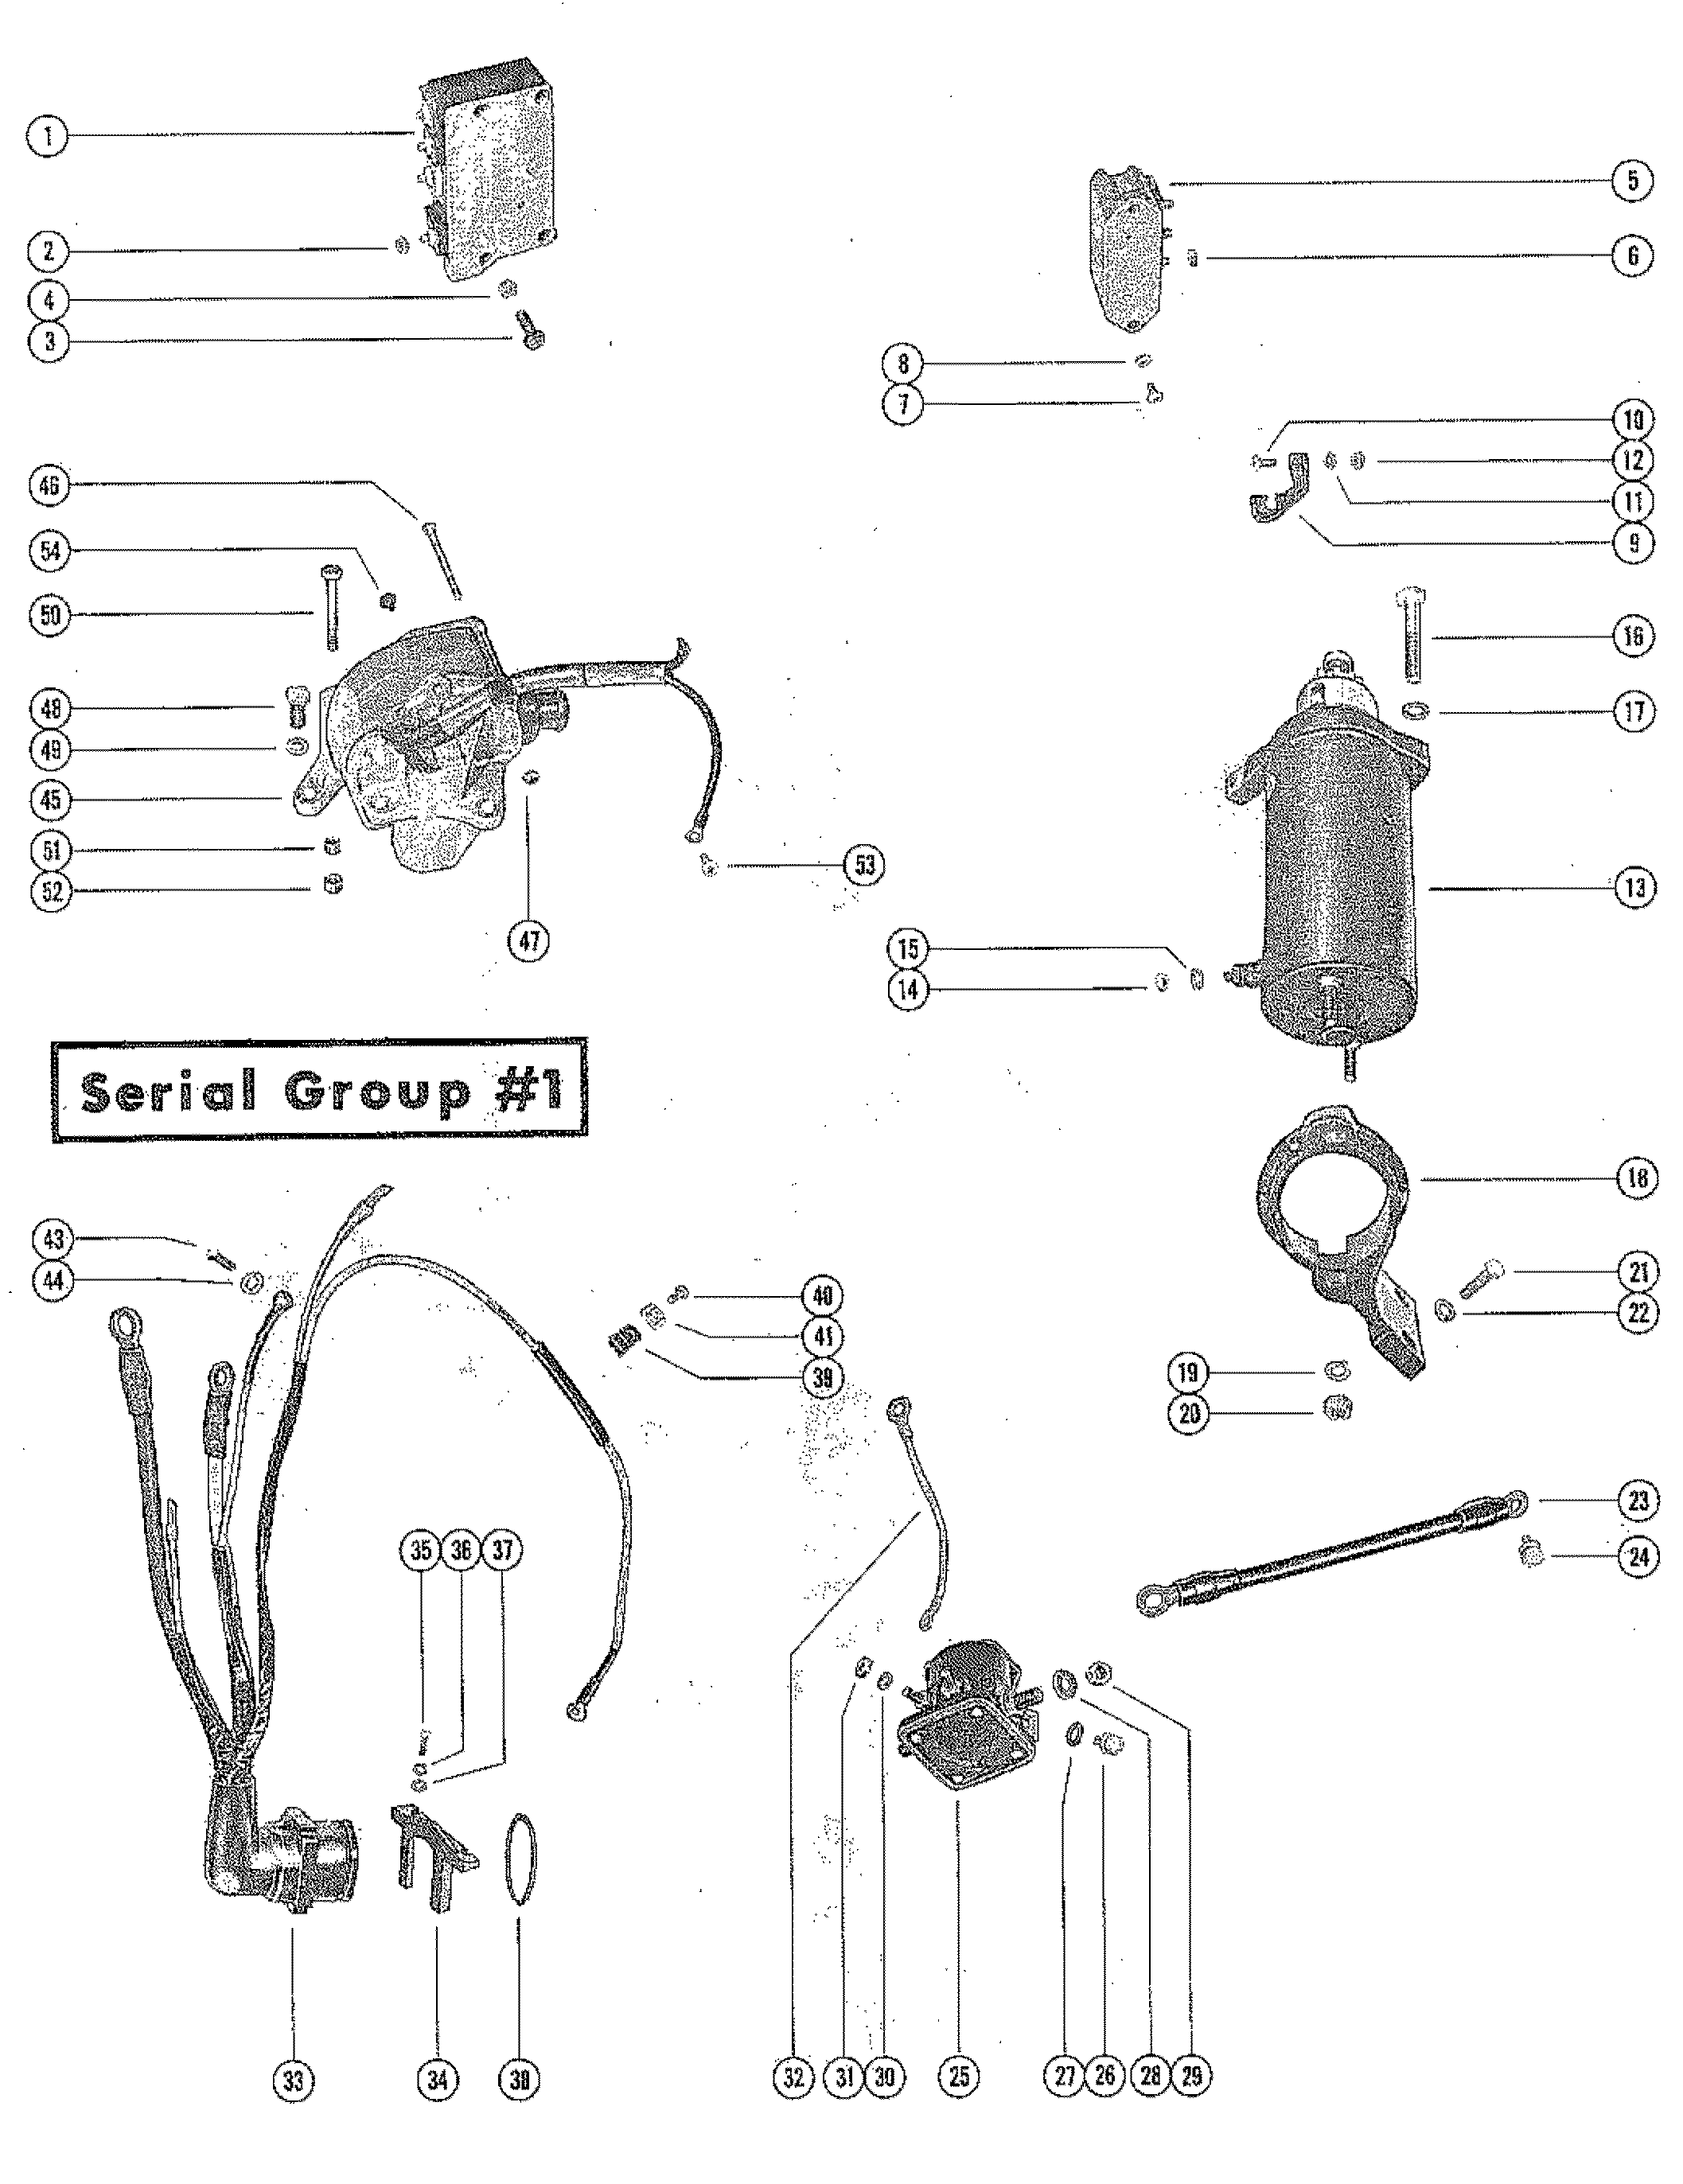 Starter Motor And Wiring Harness Serial Group 1 For